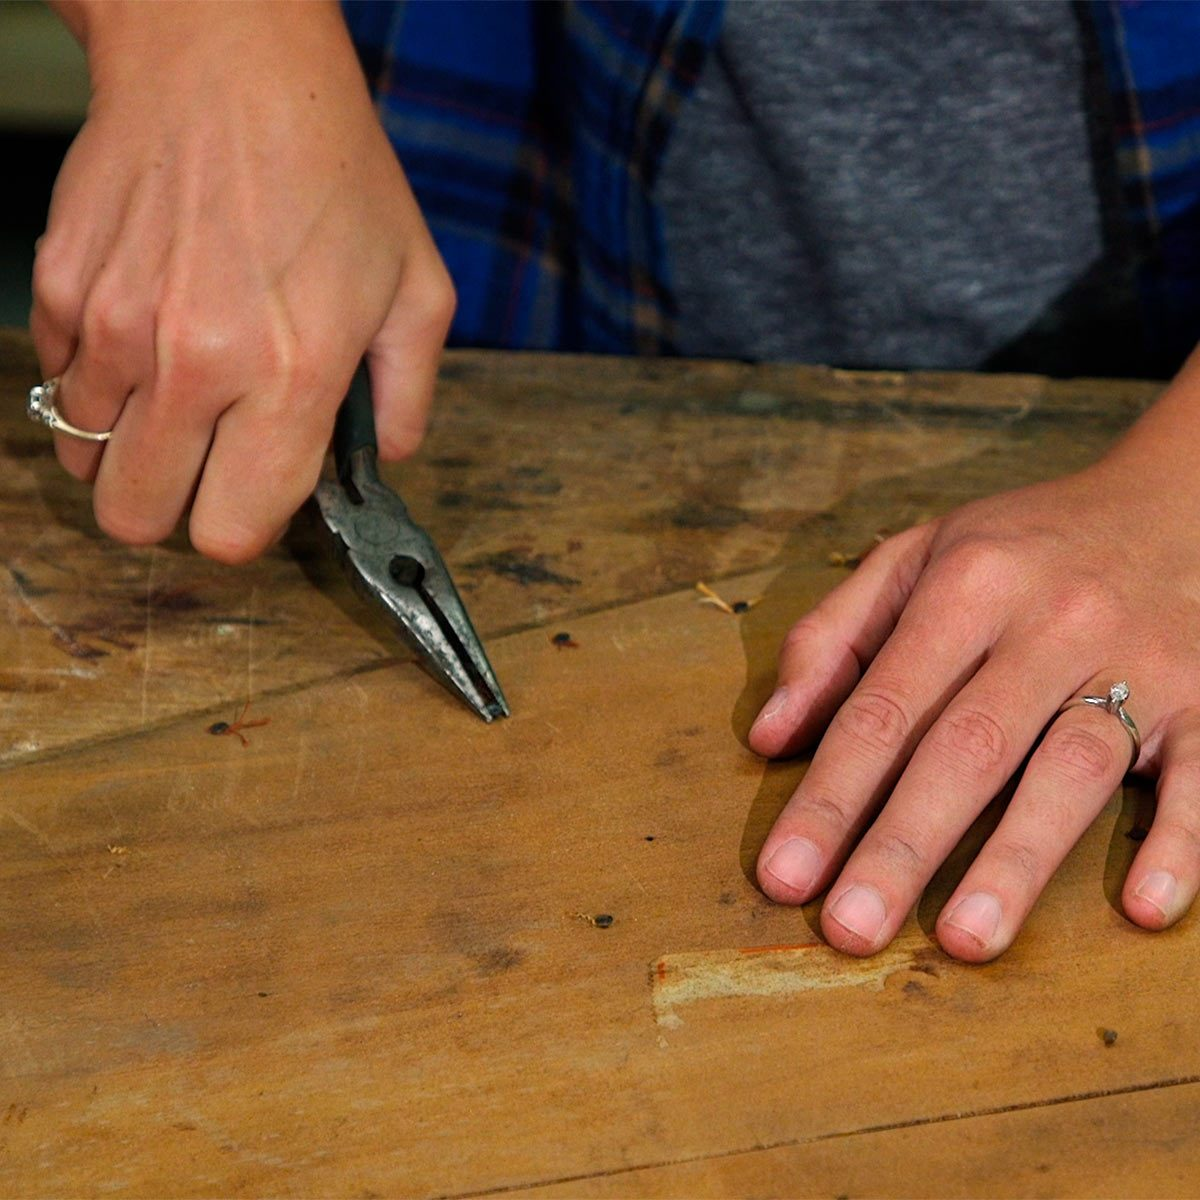 remove old upholstery tacks